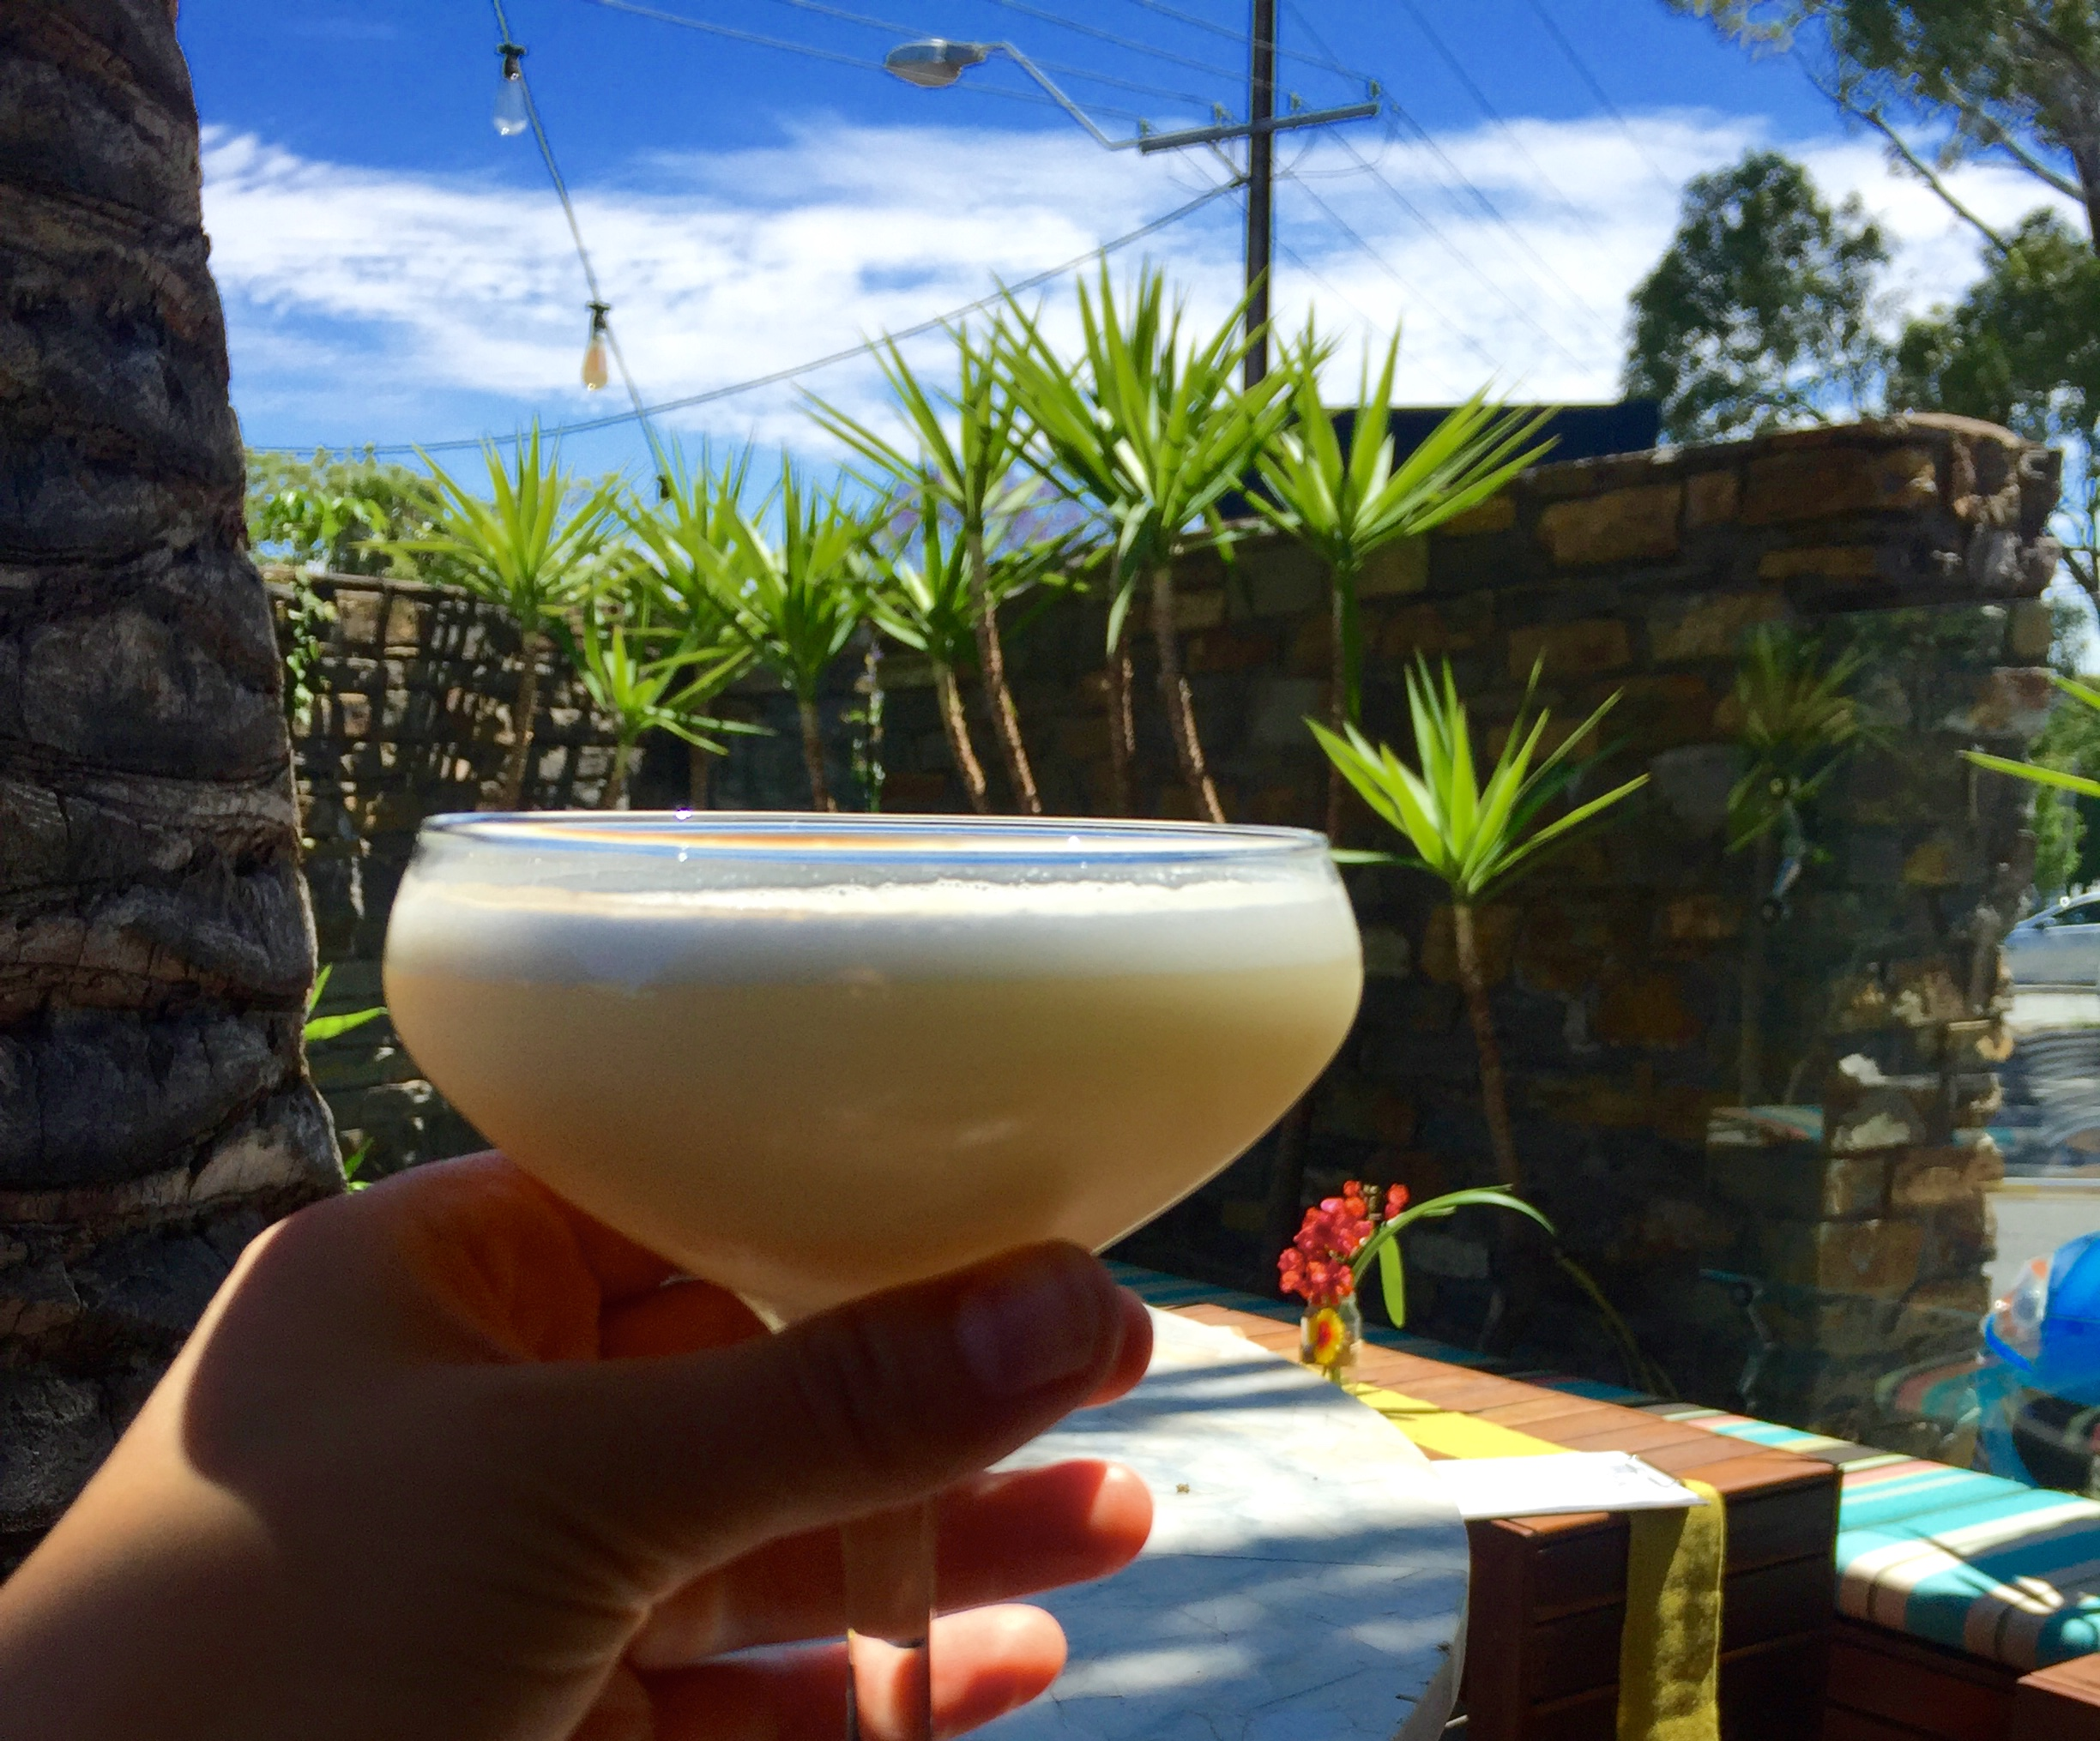 Cheeeers to the freakin' weekend – and the sun